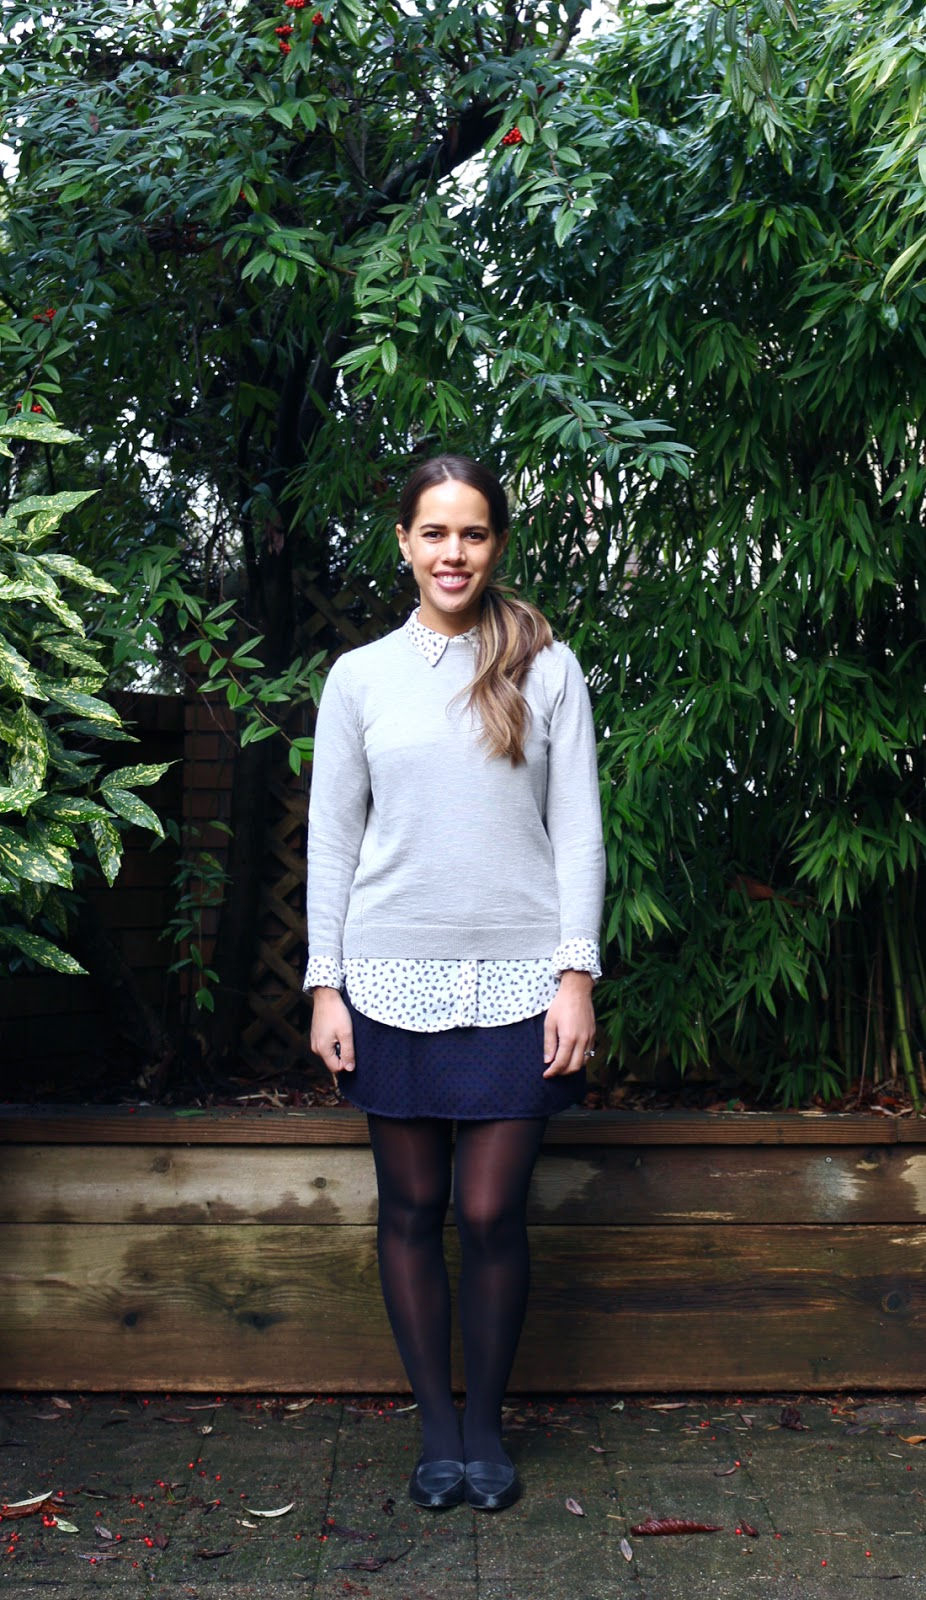 Jules in Flats - Layered Sweater with Mini Skirt for Work (Business Casual Winter Workwear on a Budget)